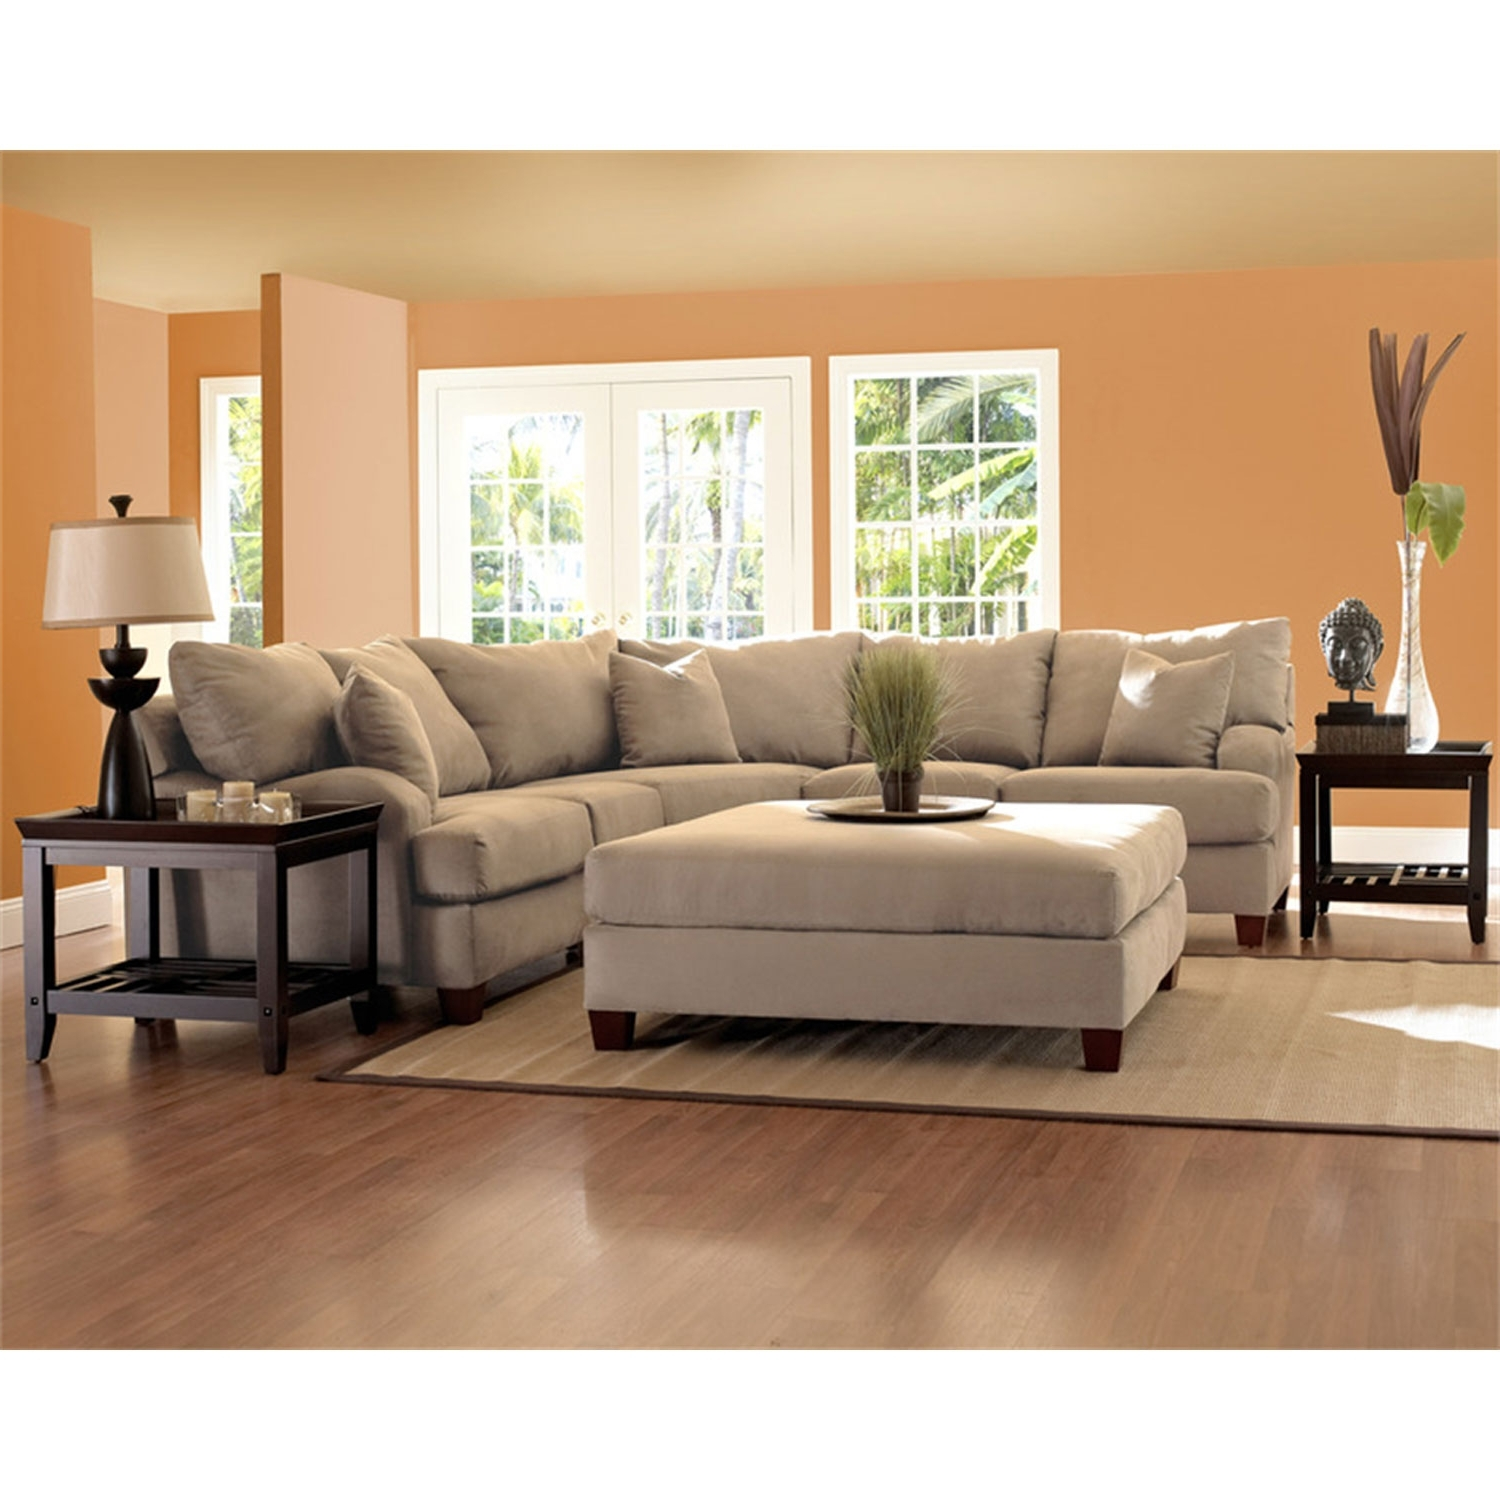 Canyon Beige Sectional Sectional Sofas Sofas & Sectionals Living For 2018 Beige Sectional Sofas (View 8 of 20)